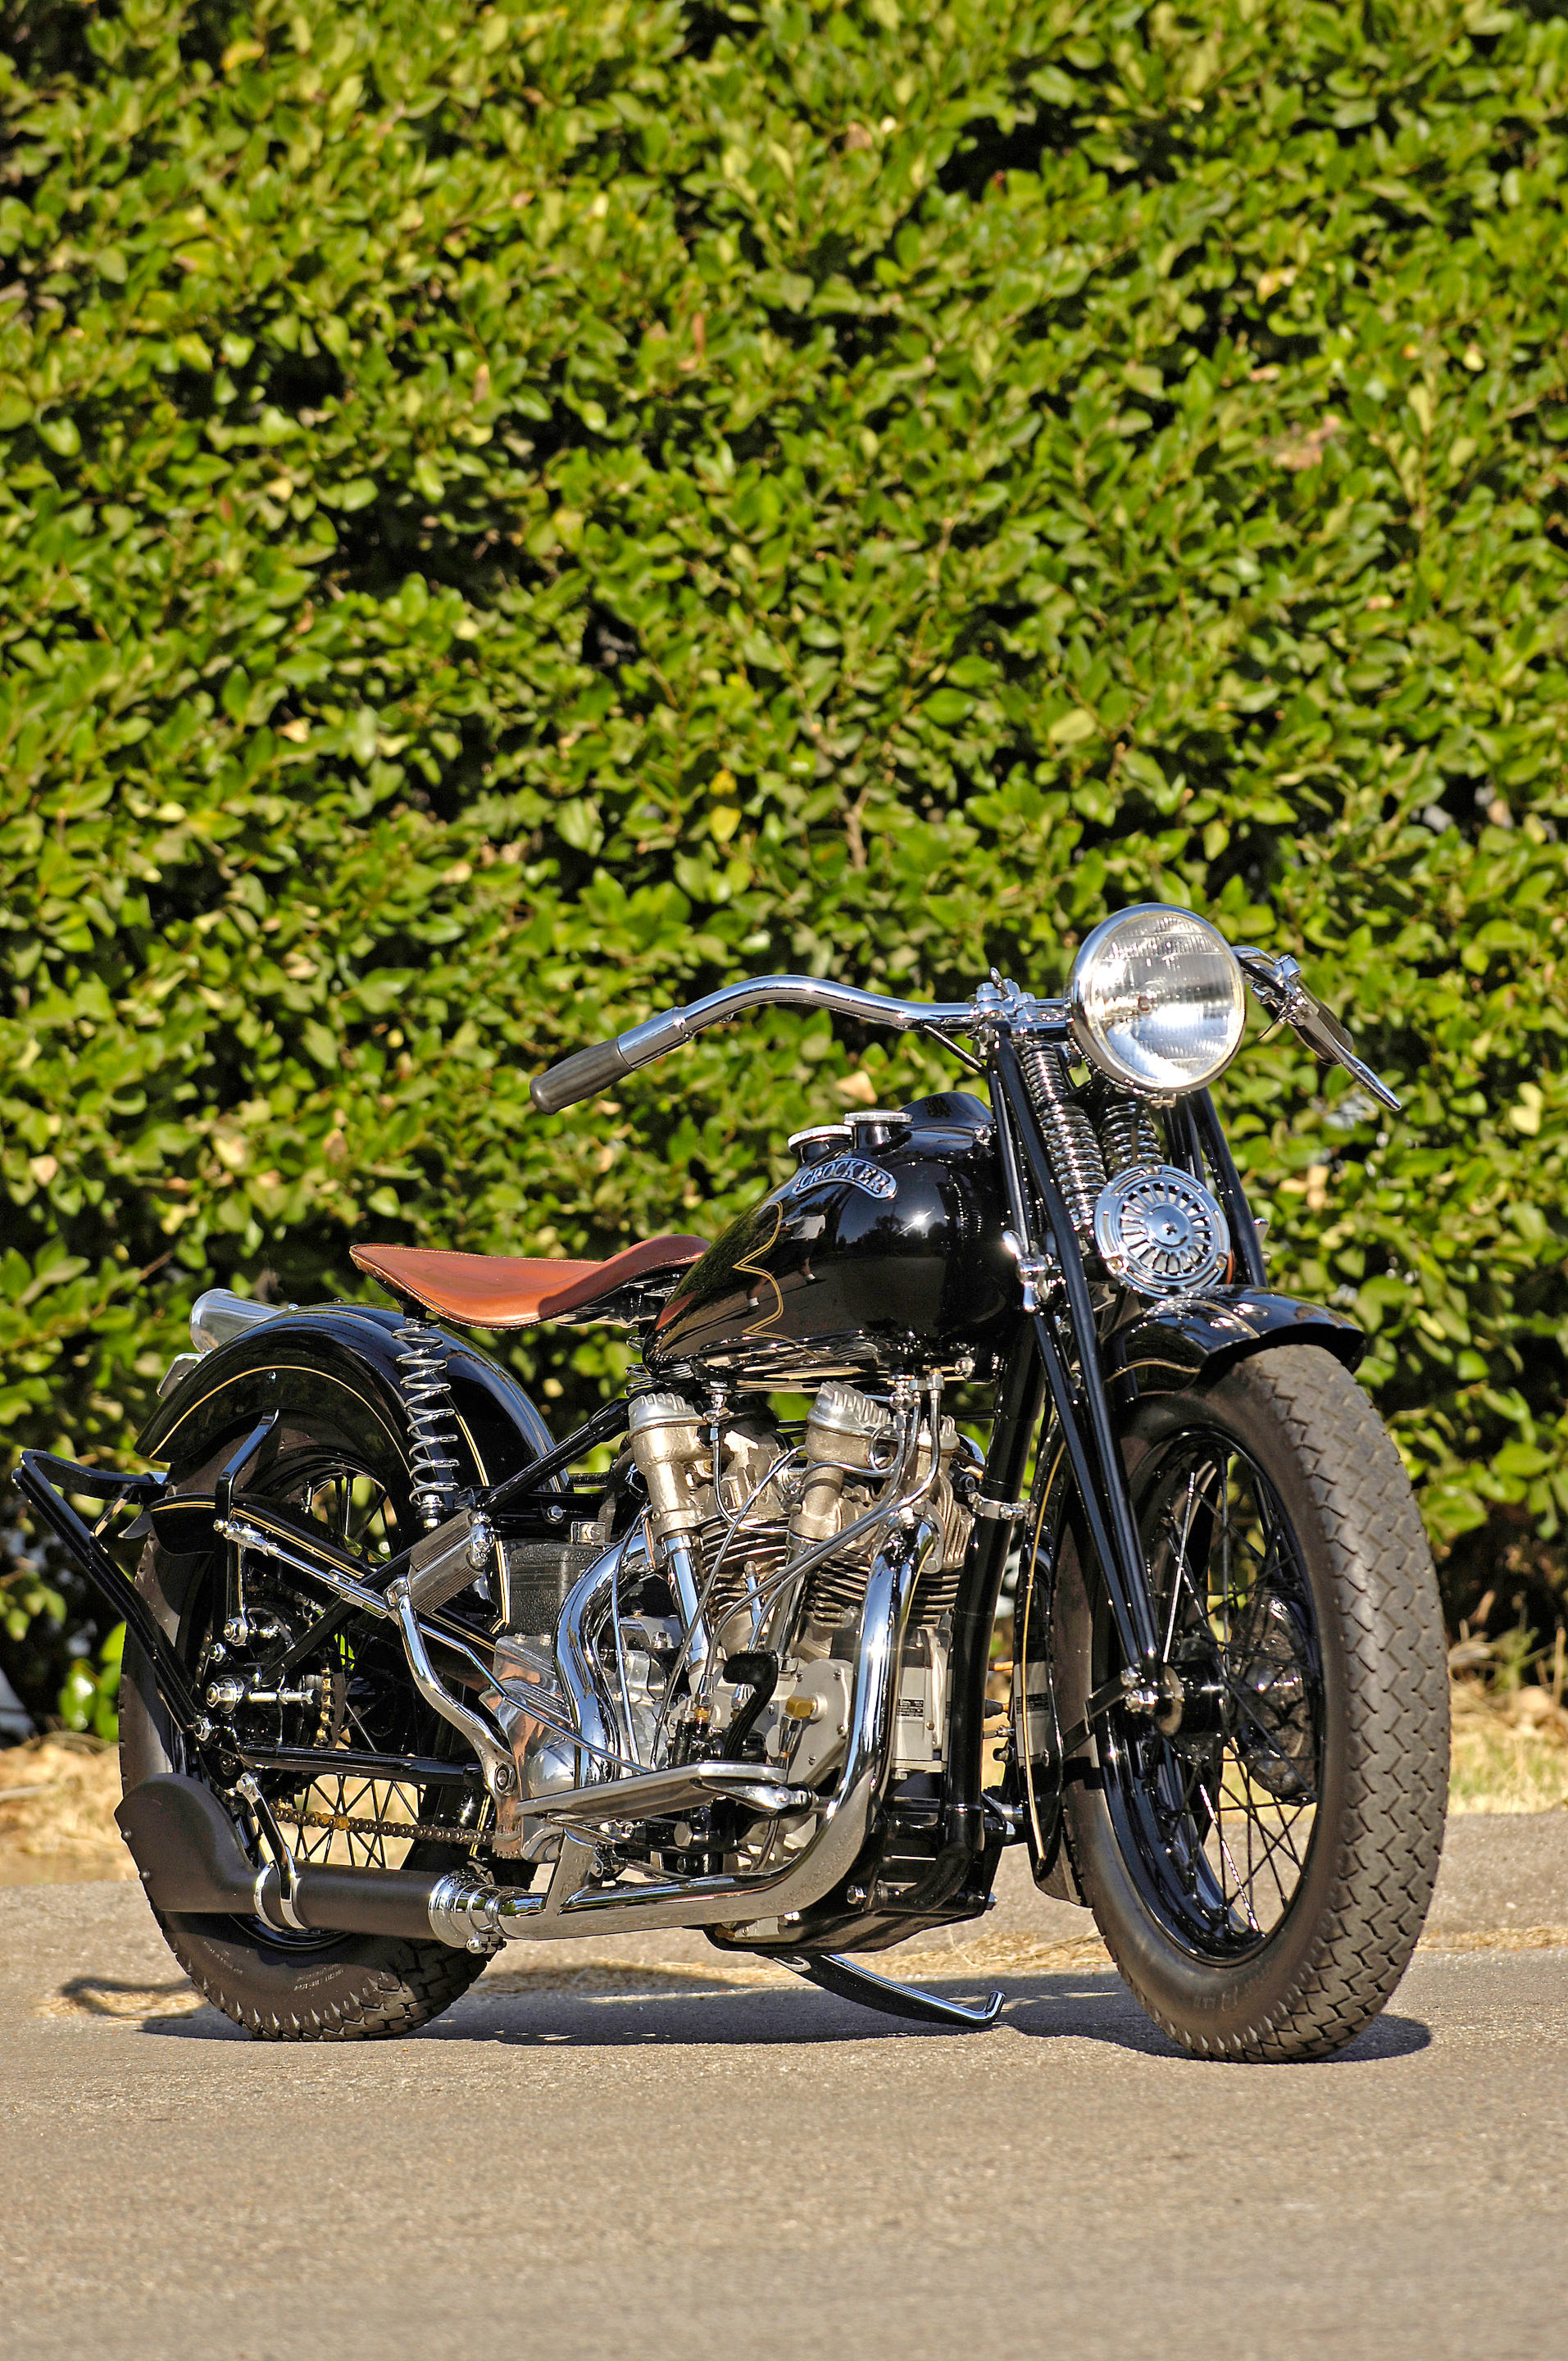 Auktion - An Important Sale of Collectors' Motorcycles and